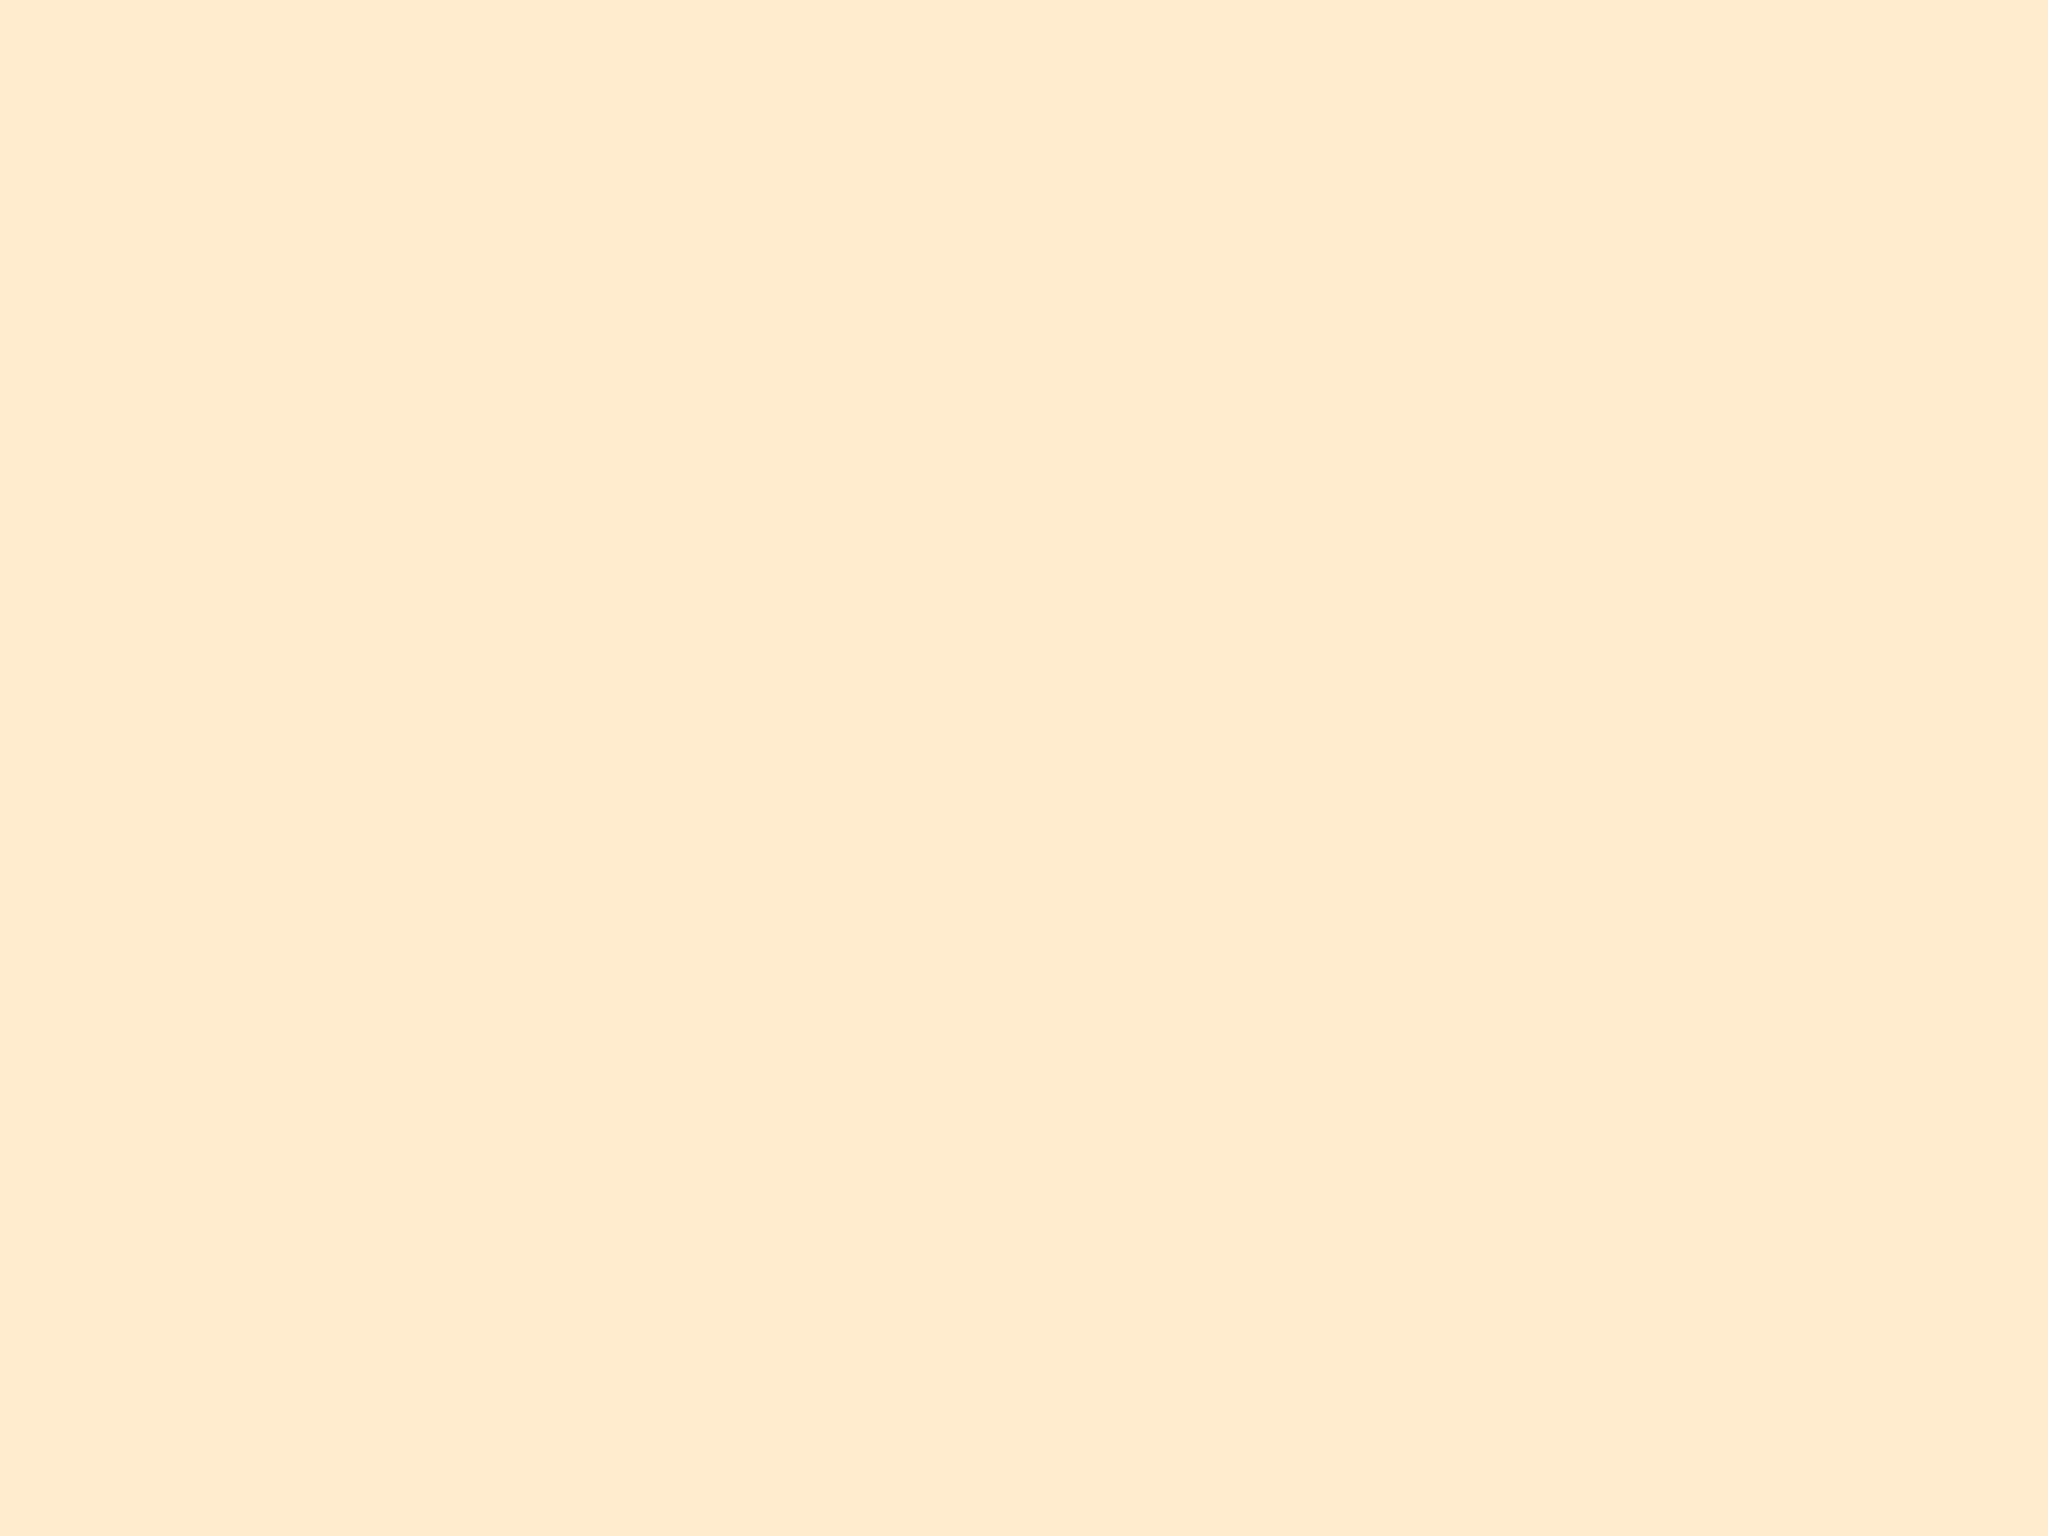 2048x1536 Blanched Almond Solid Color Background